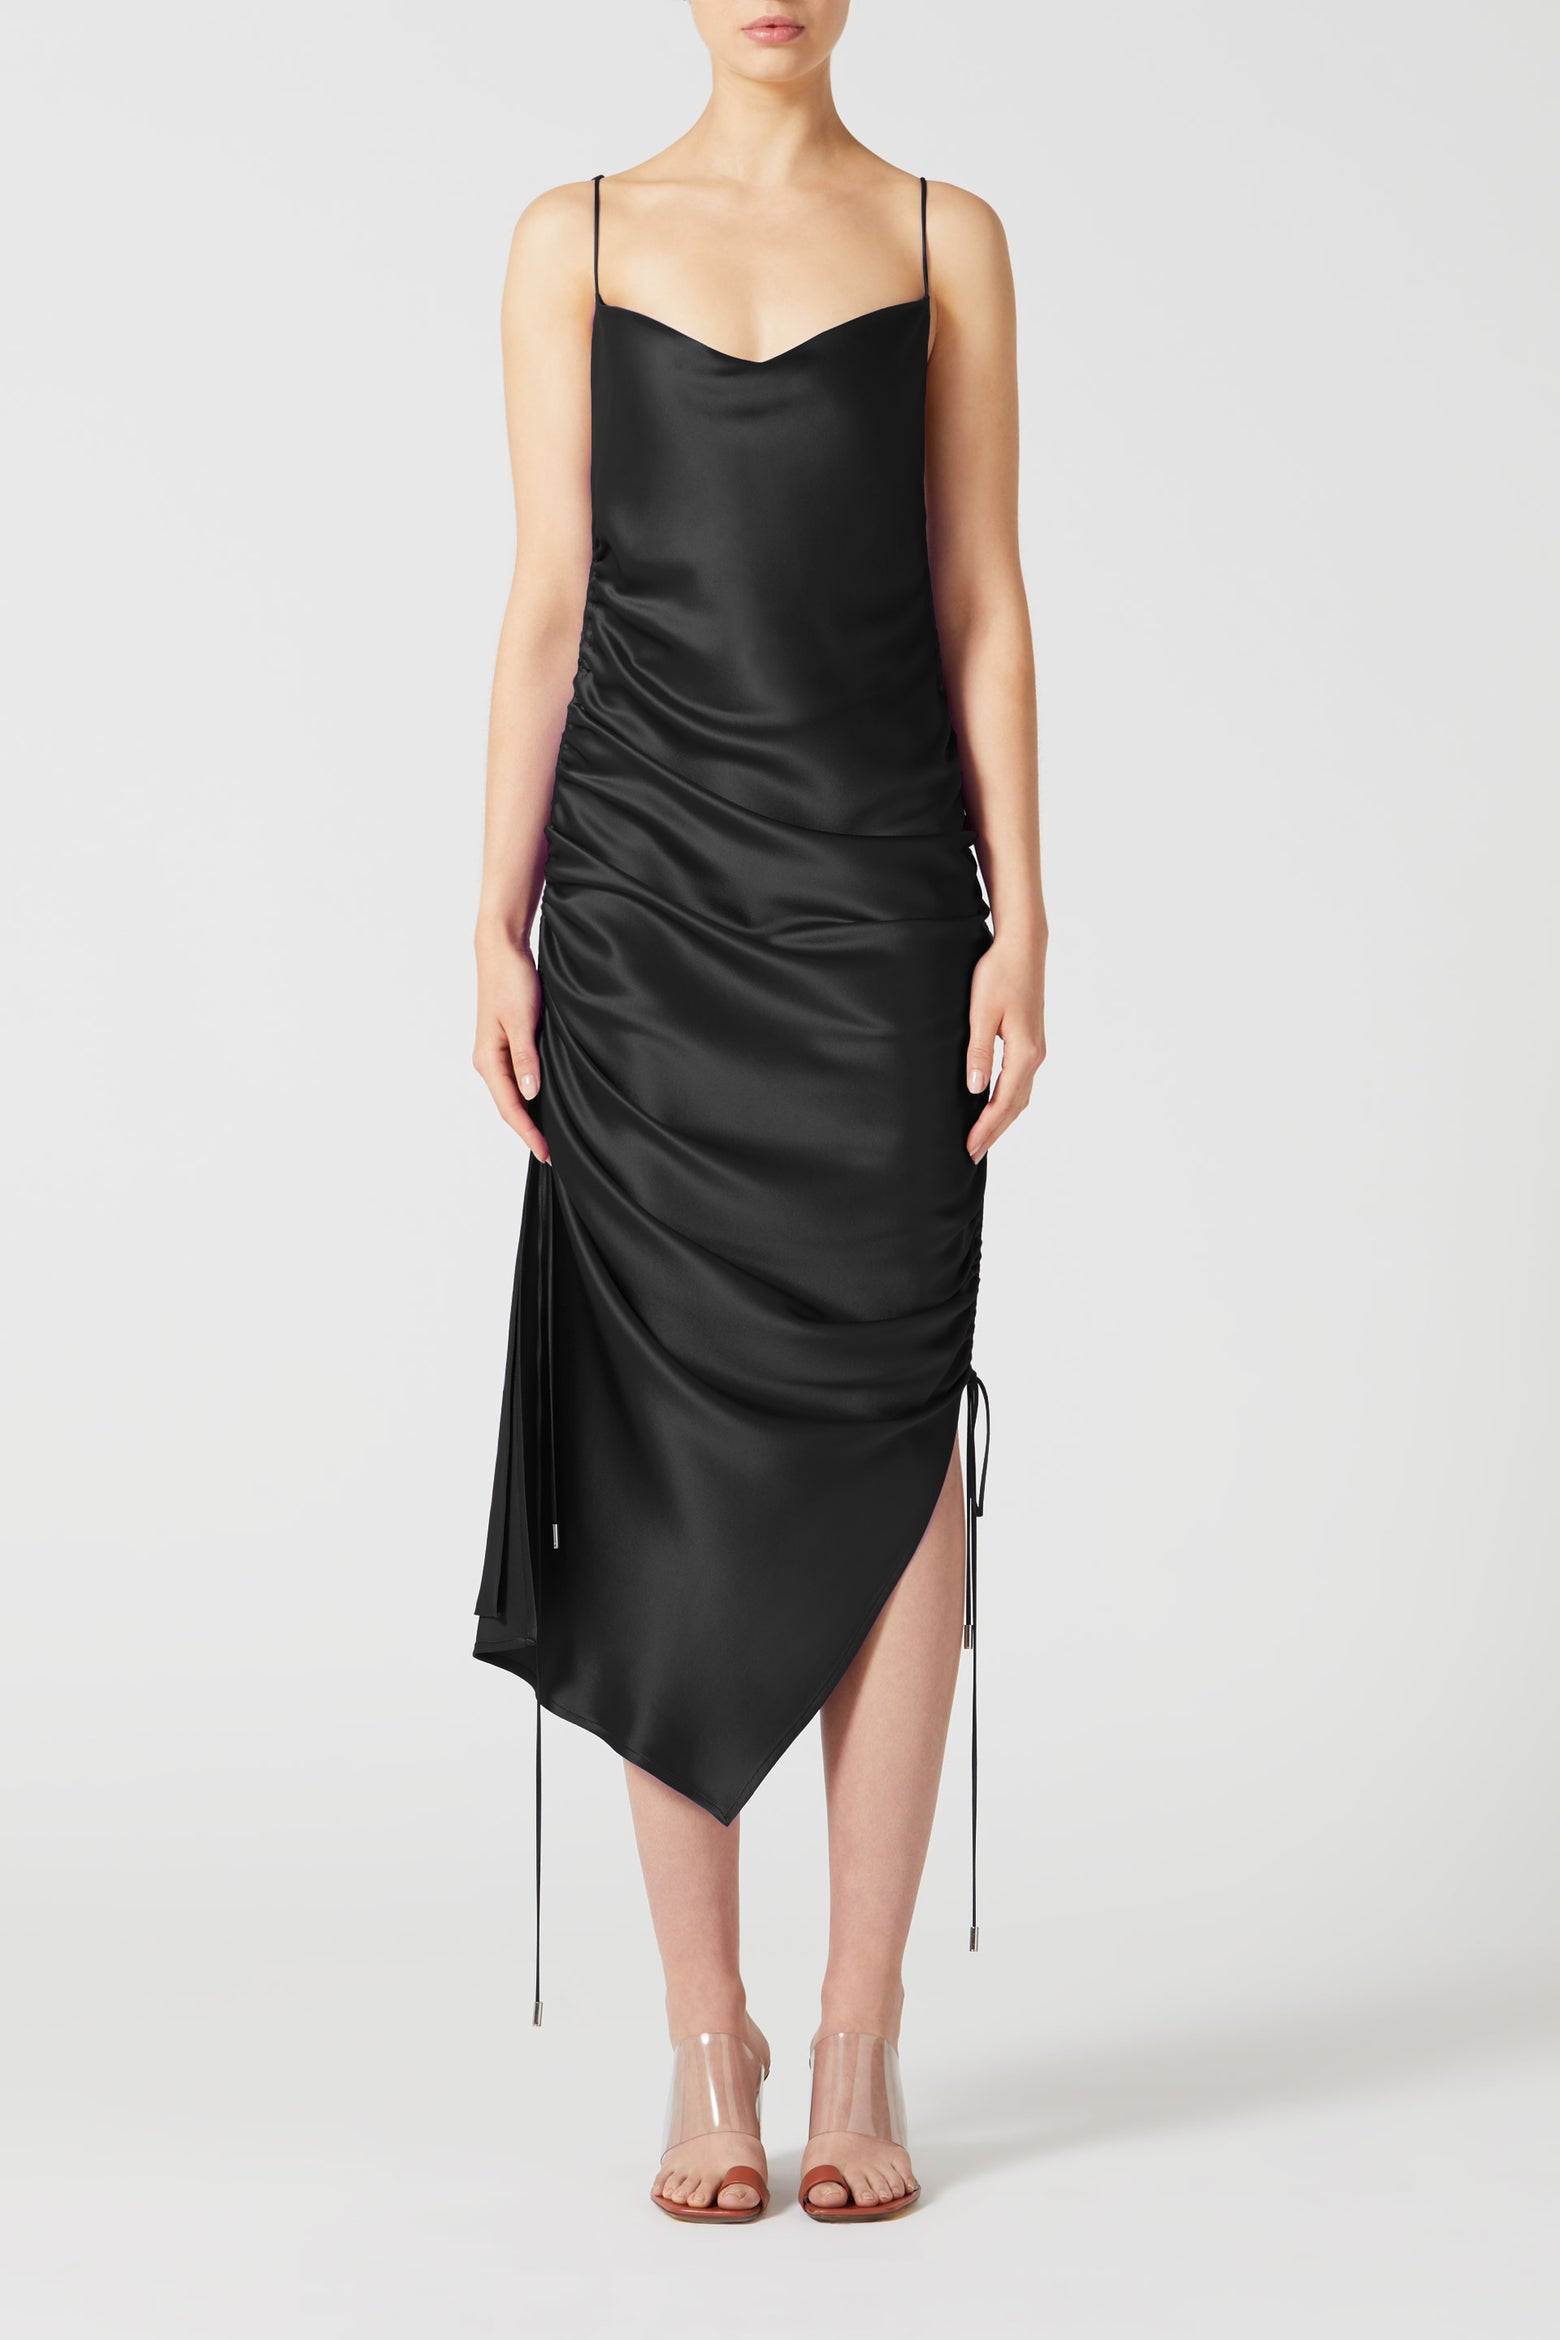 Yasmine dress - Black